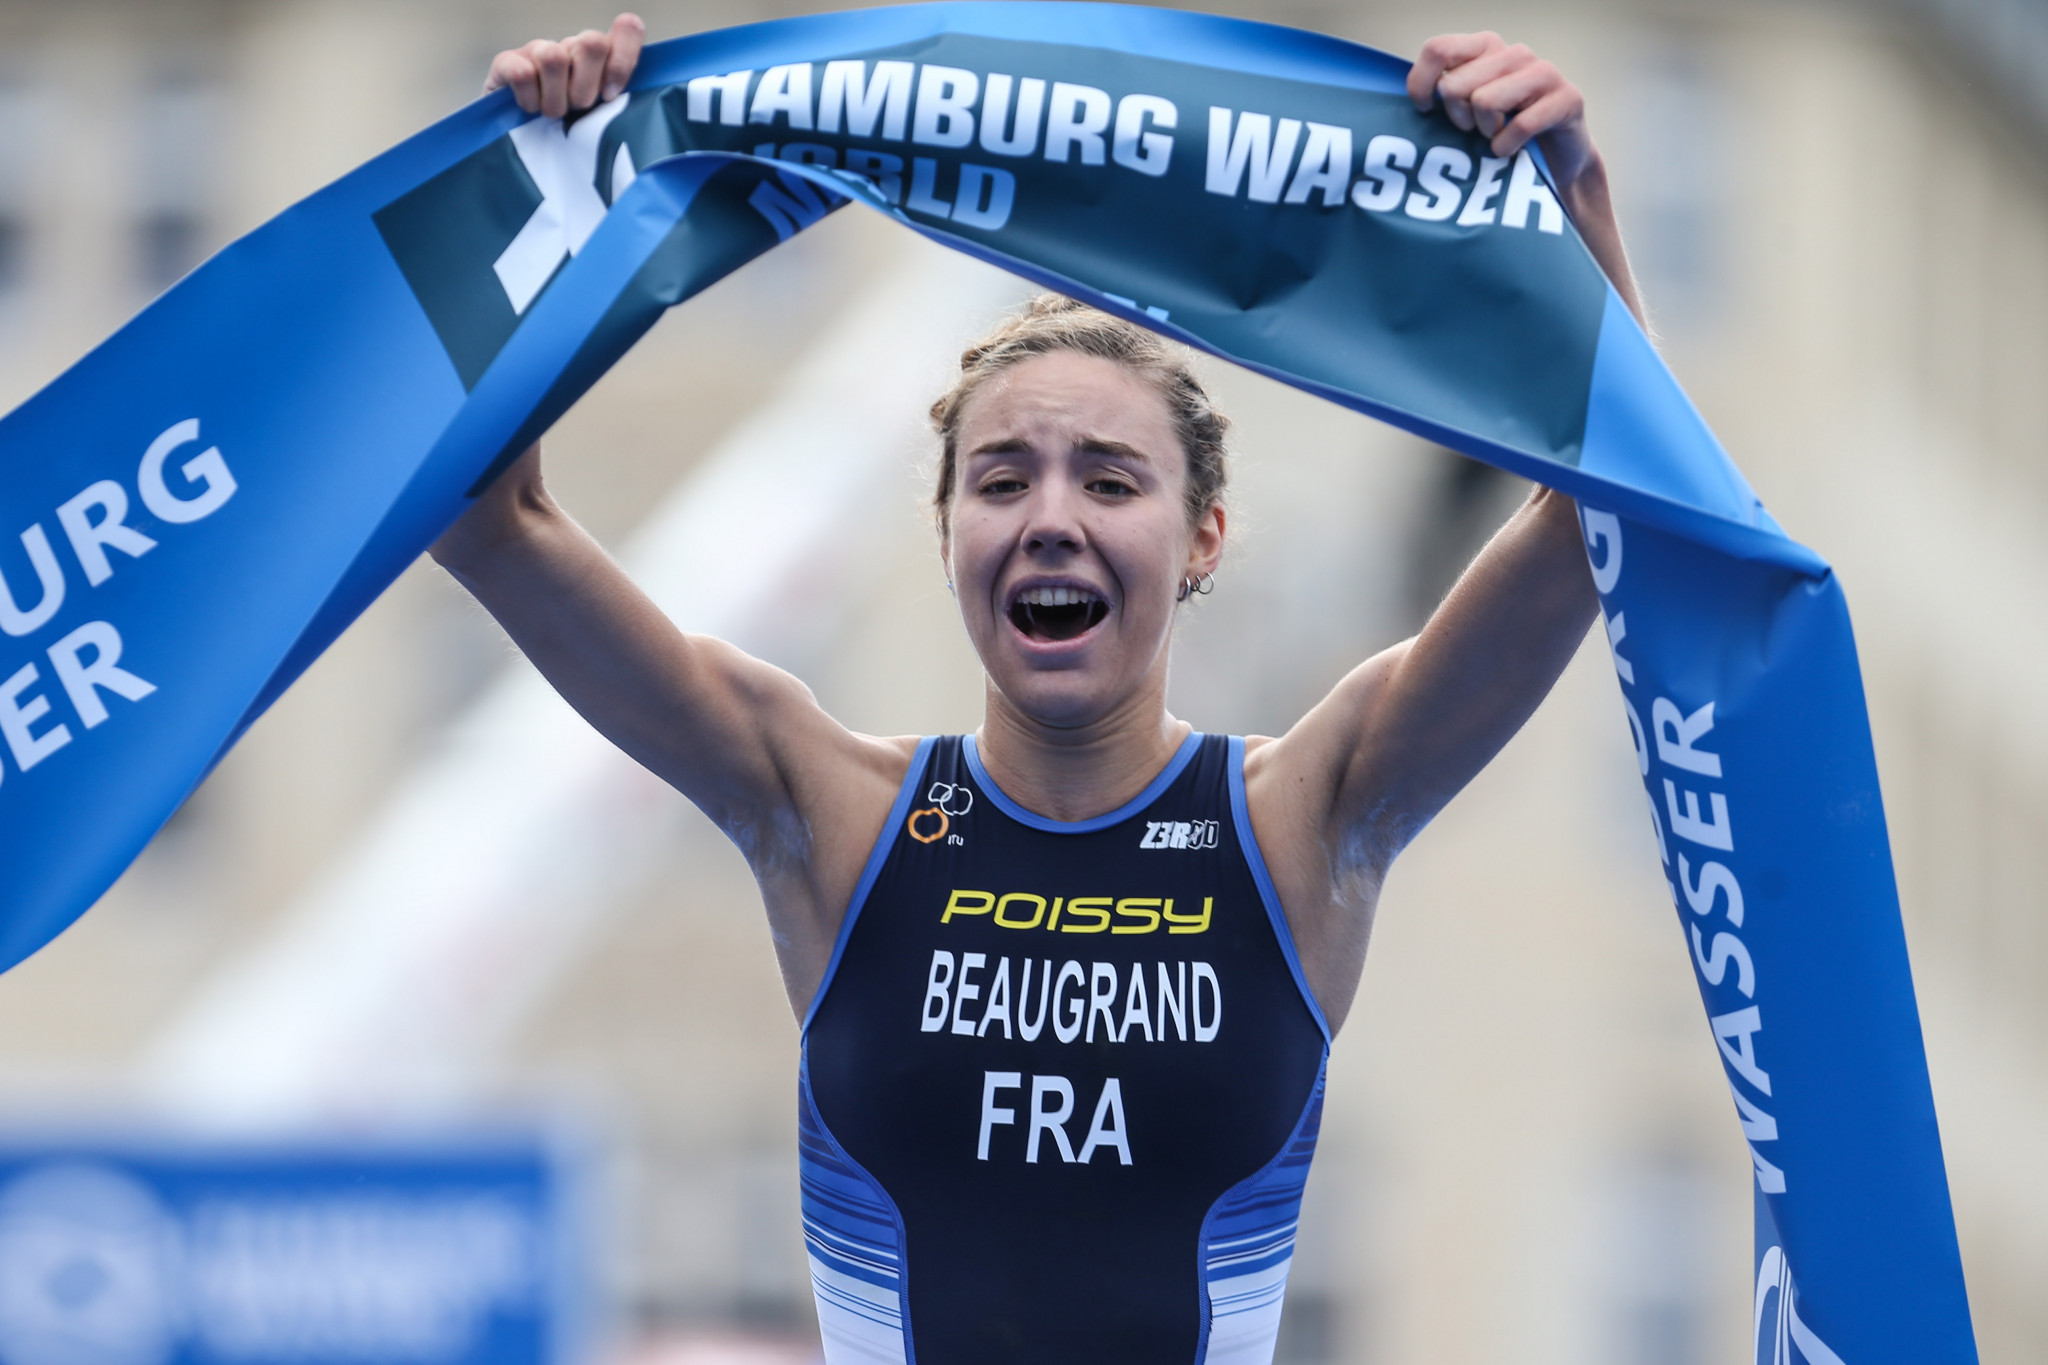 France's 21-year-old Cassandre Beaugrand, unexpected winner of Saturday's women's race at the ITU World Cup in Hamburg, earned a second gold today as part of the mixed relay team ©Getty Images